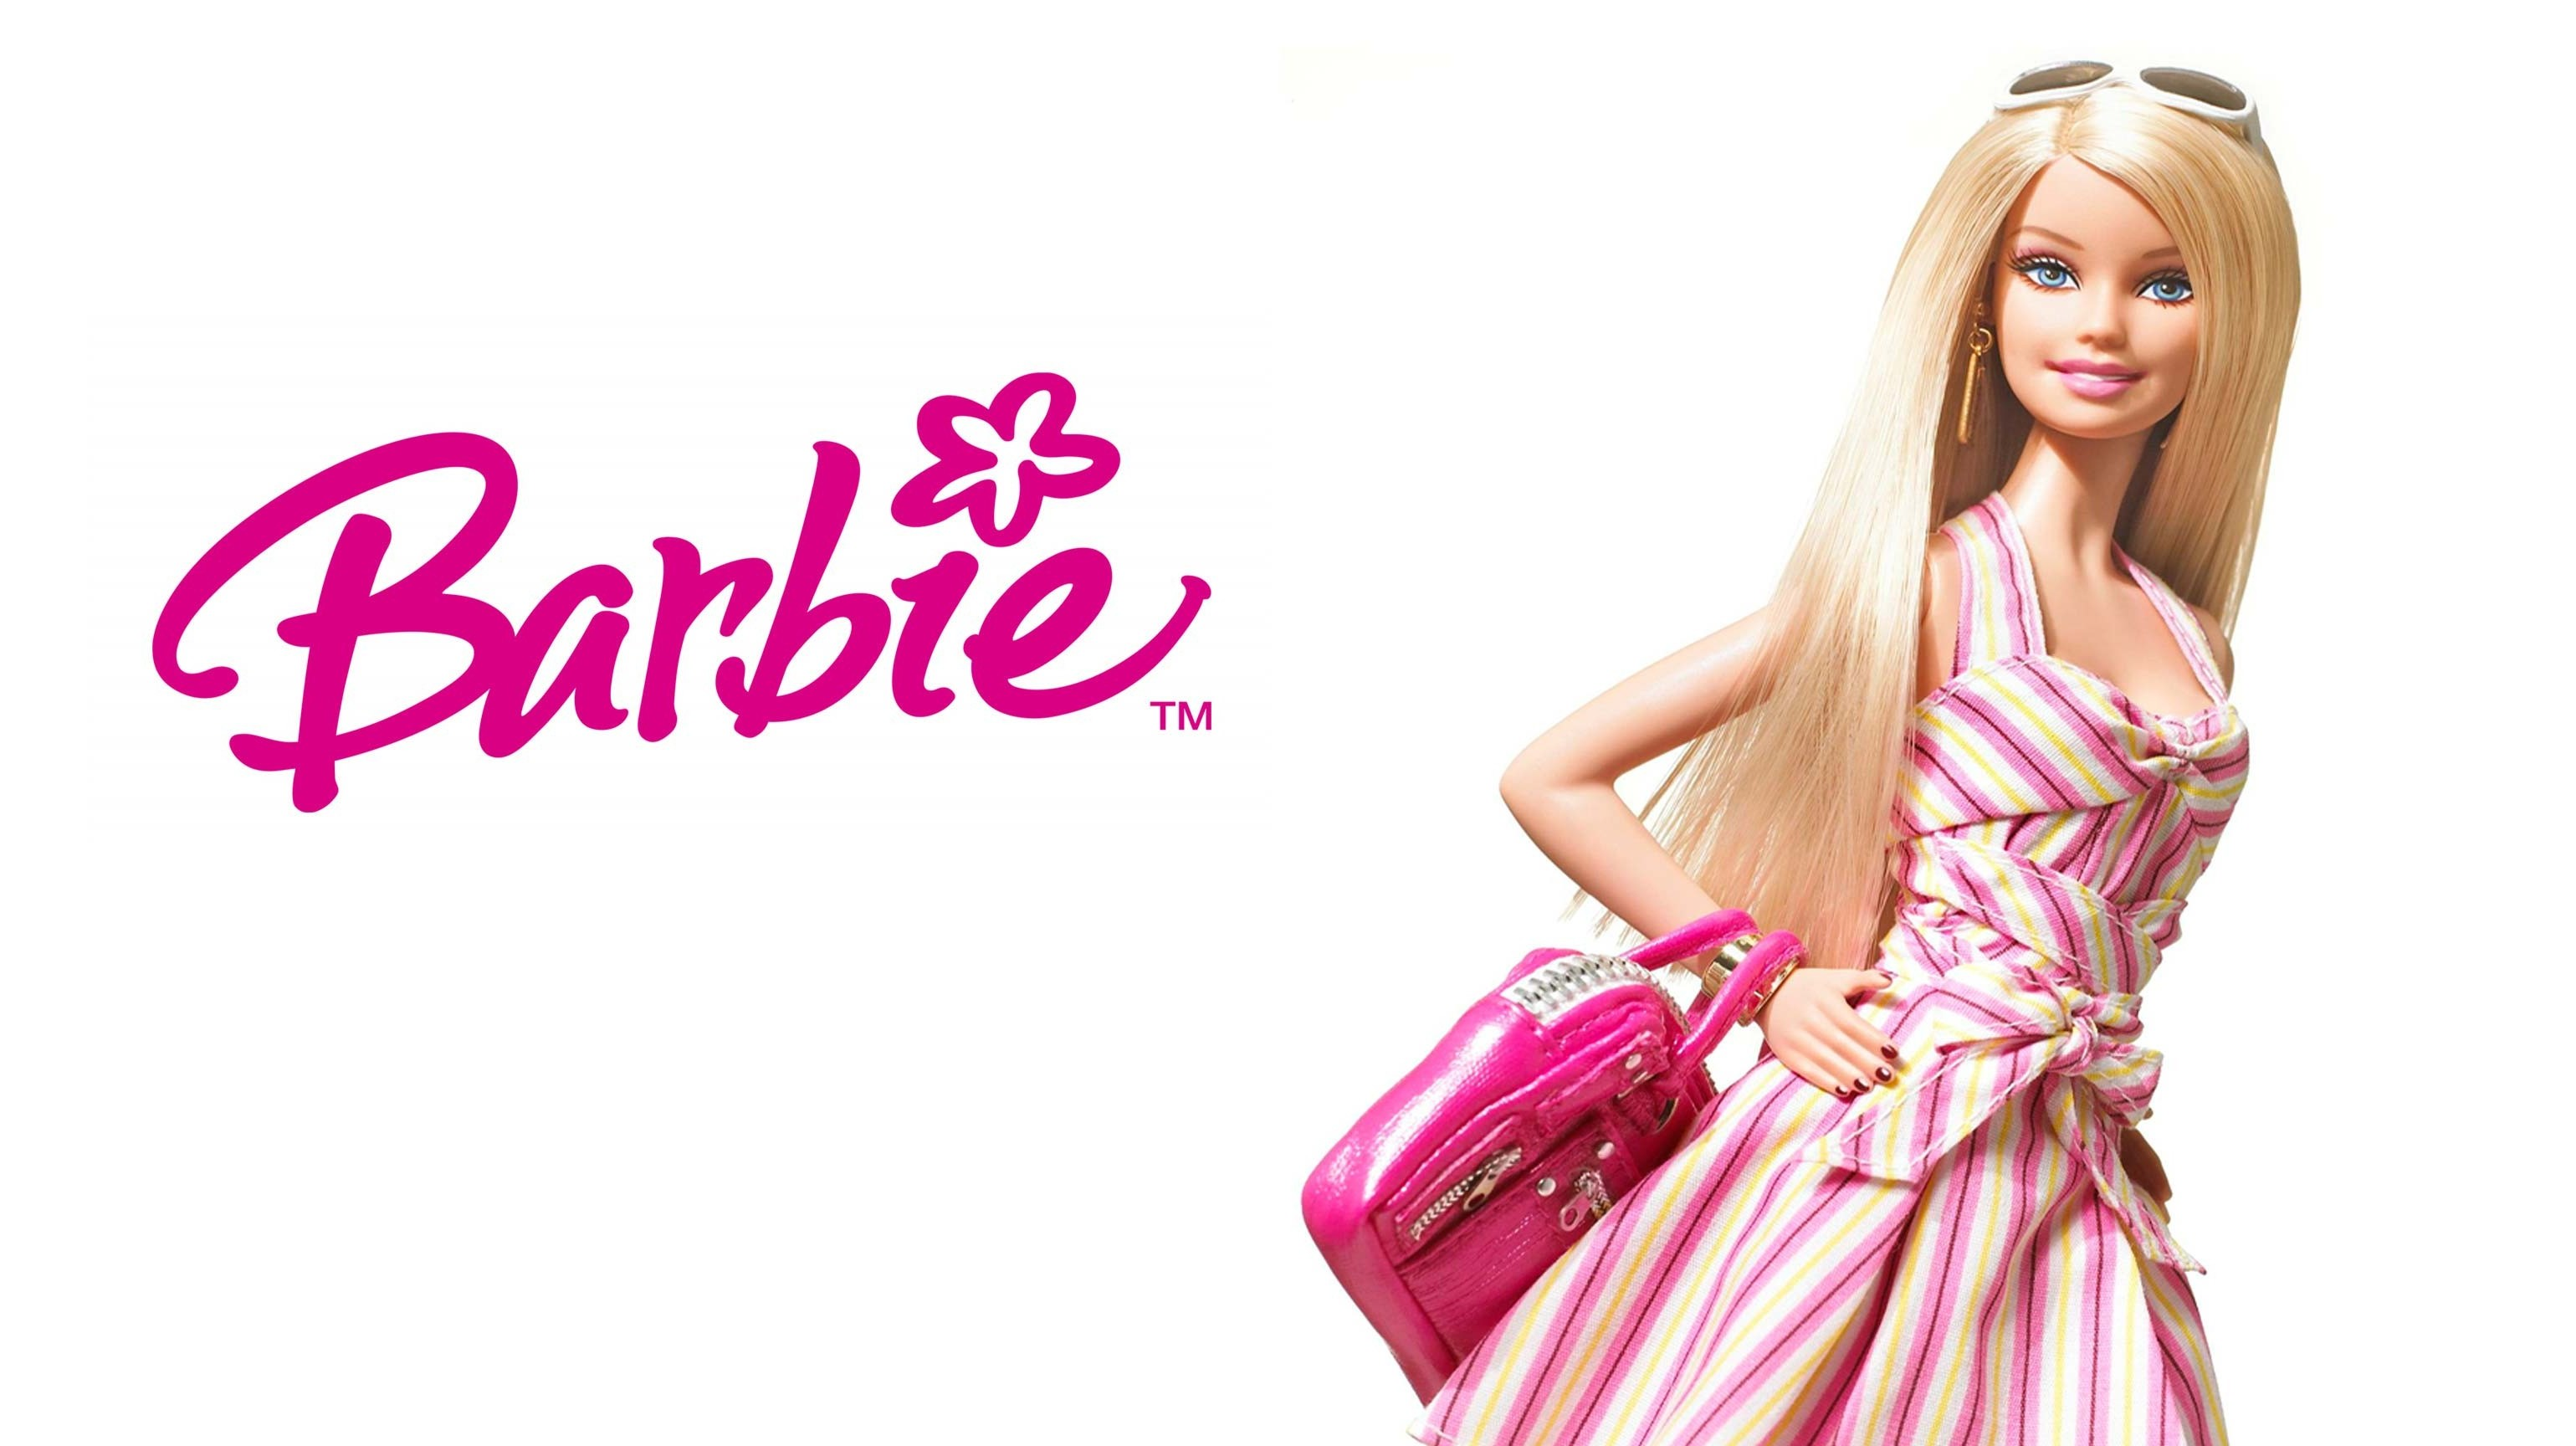 Images of Barbie | 3079x1728